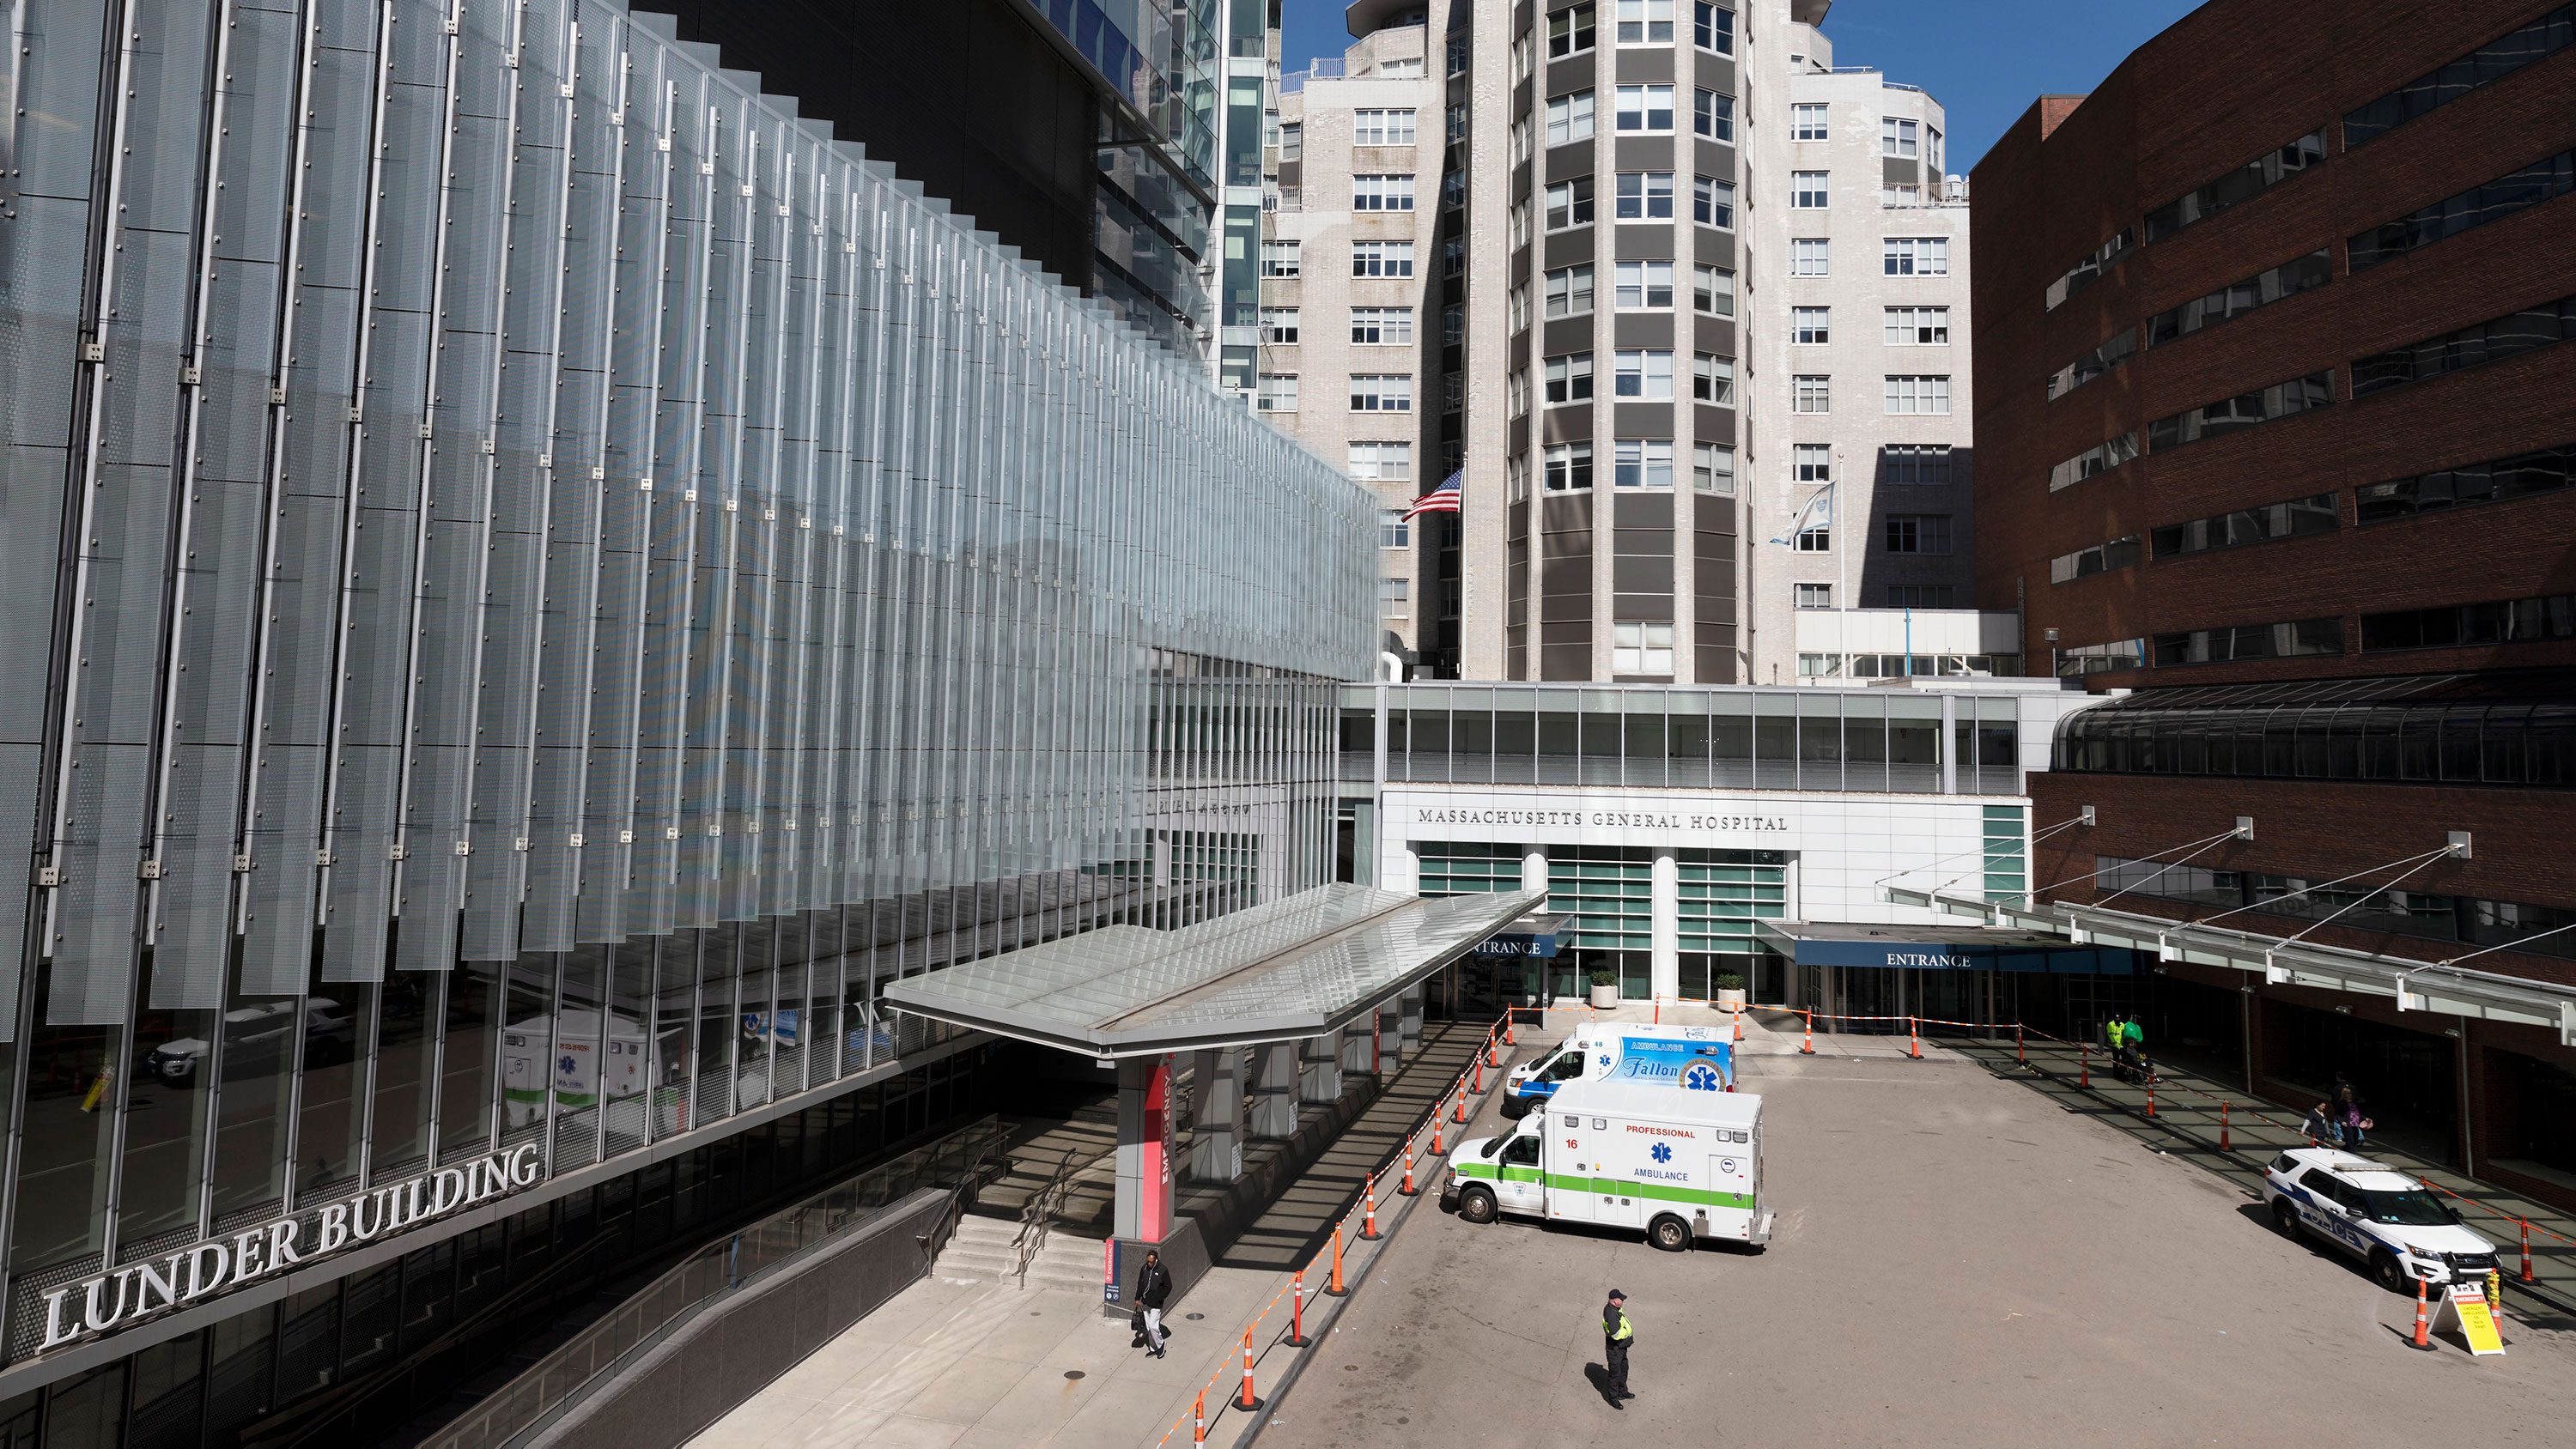 Massachusetts General Hospital is pictured in Boston, on March 14.